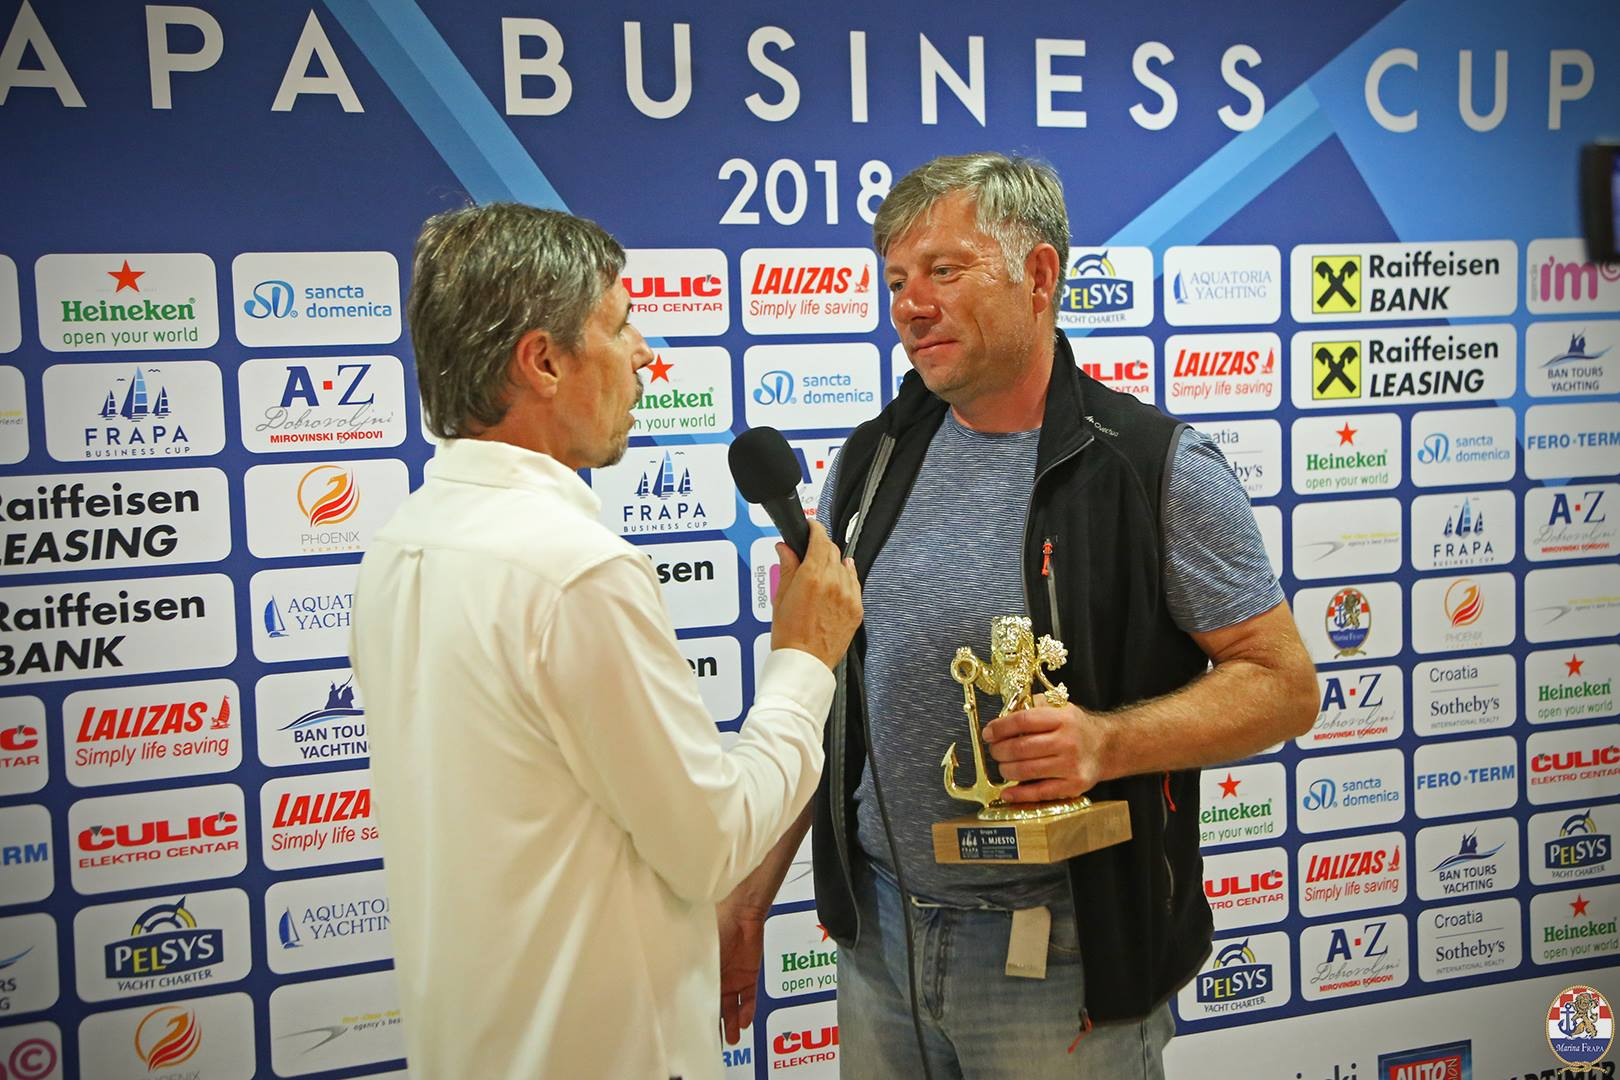 Aquatoria Yachting wins regatta